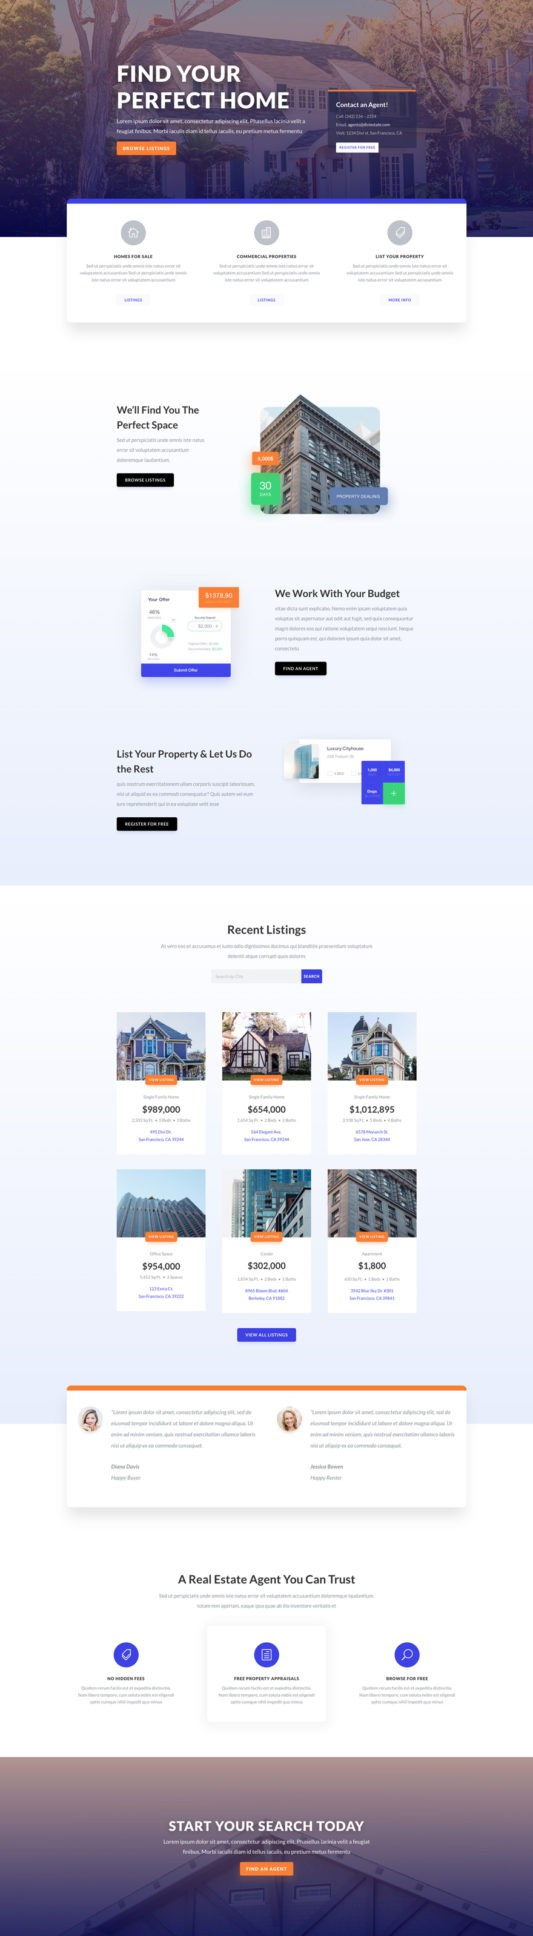 The Real Estate Page Style: Homepage Design 1